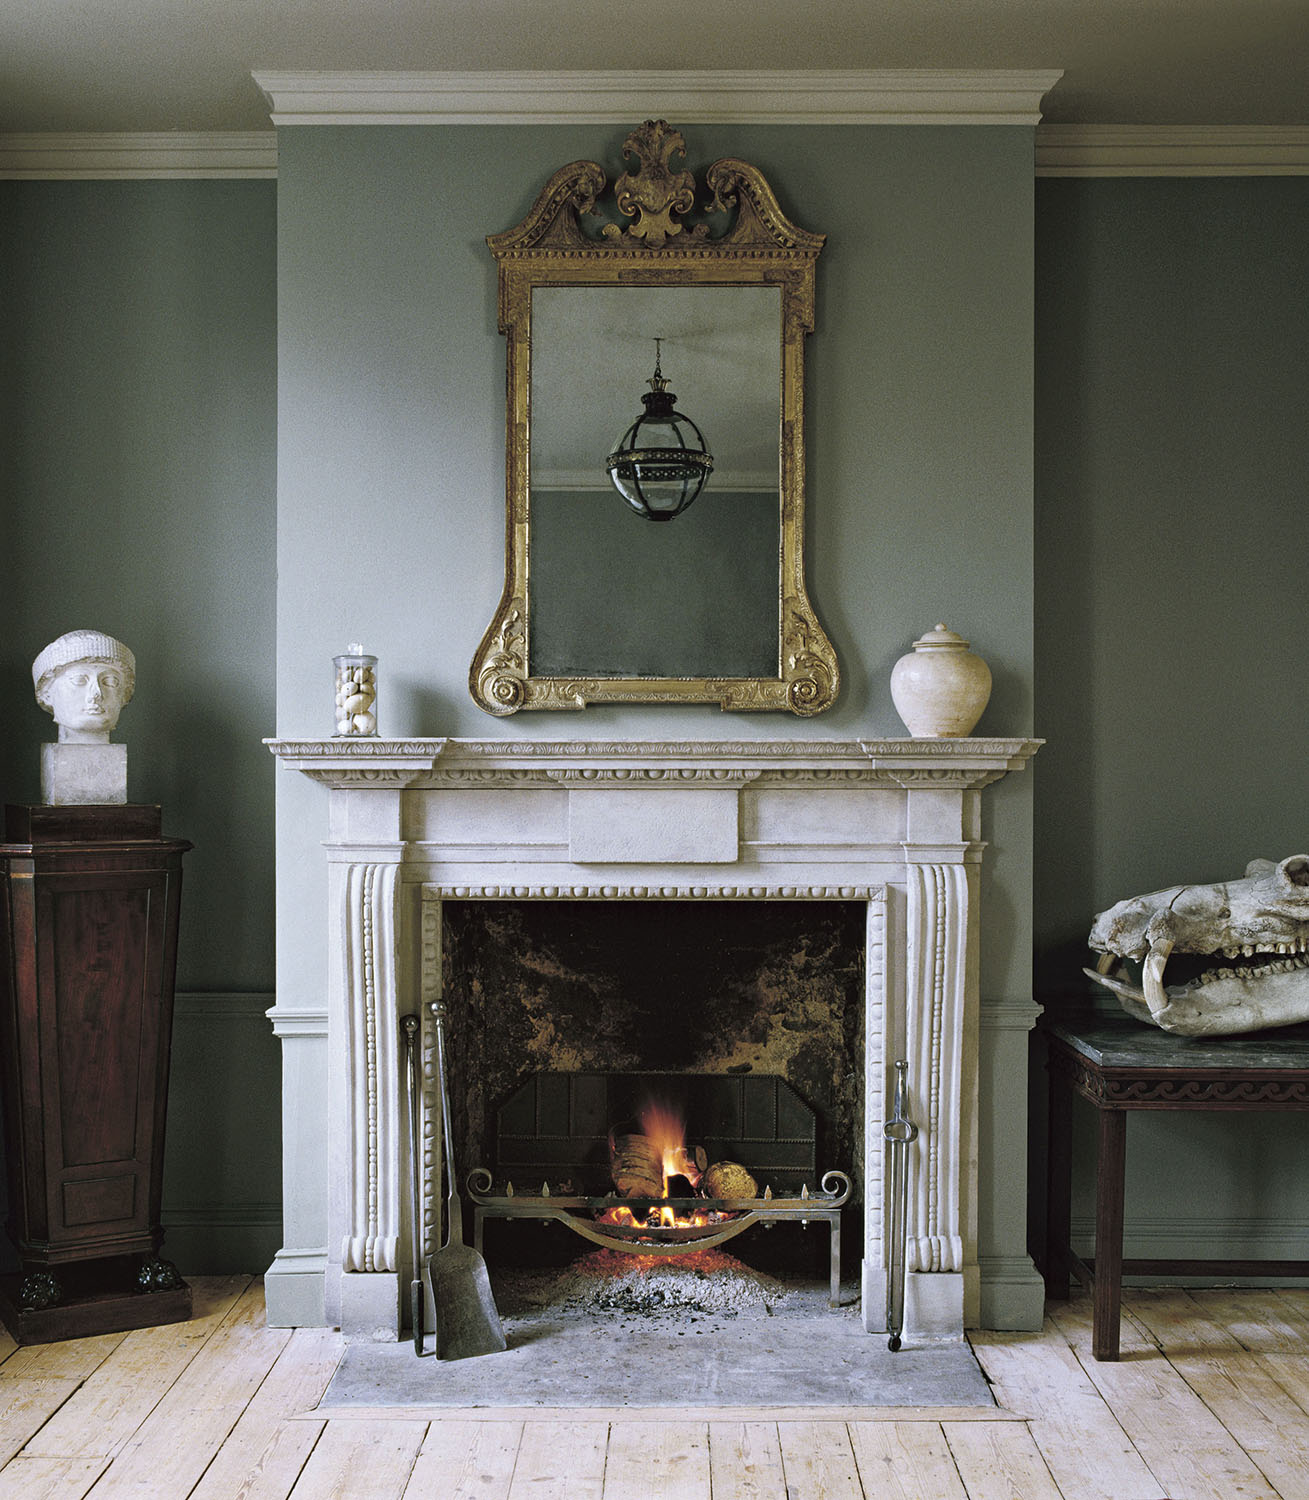 Terrific Jamb Antique Fireplaces Reproduction Lighting And Furniture Home Interior And Landscaping Ologienasavecom